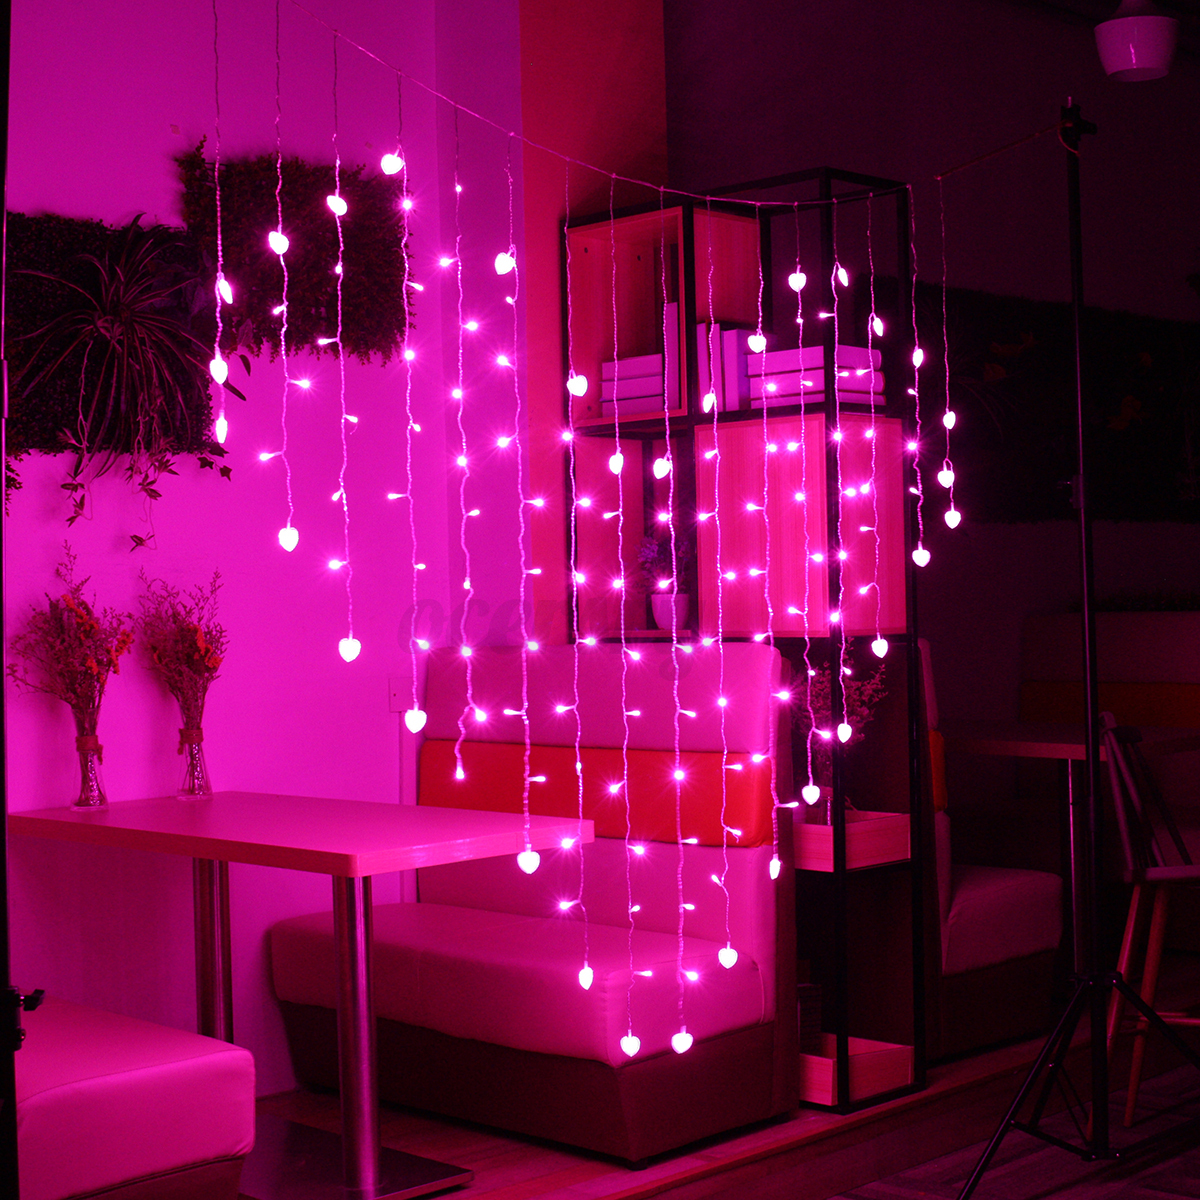 led lichterkette herz fenster lichtervorhang weihnachten hochzeit party dekor ebay. Black Bedroom Furniture Sets. Home Design Ideas